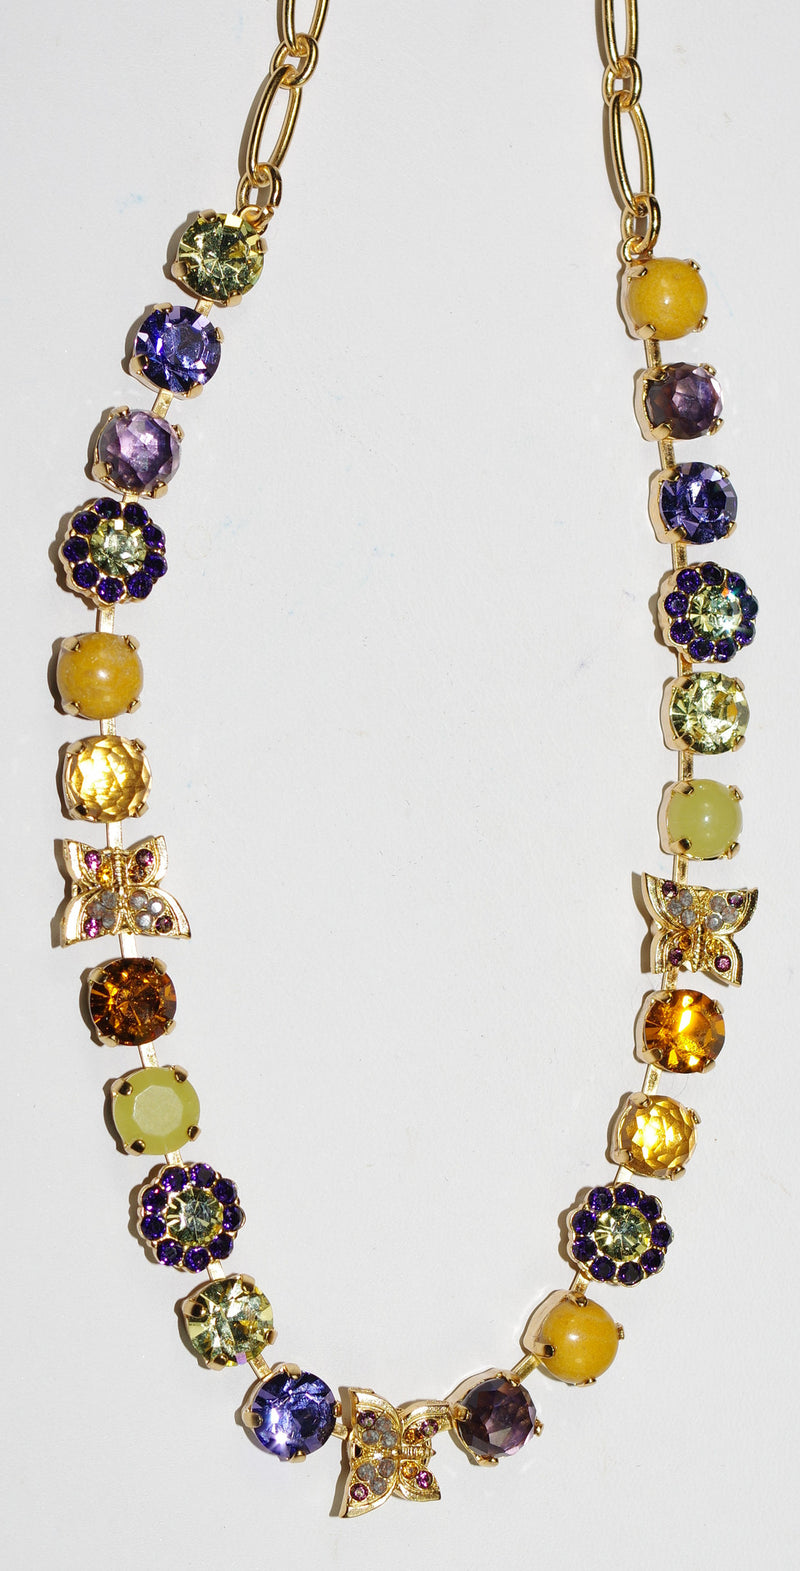 "MARIANA NECKLACE HOPE: purple, yellow, topaz, lavender stones in yellow gold setting, 16"" adjustable chain"